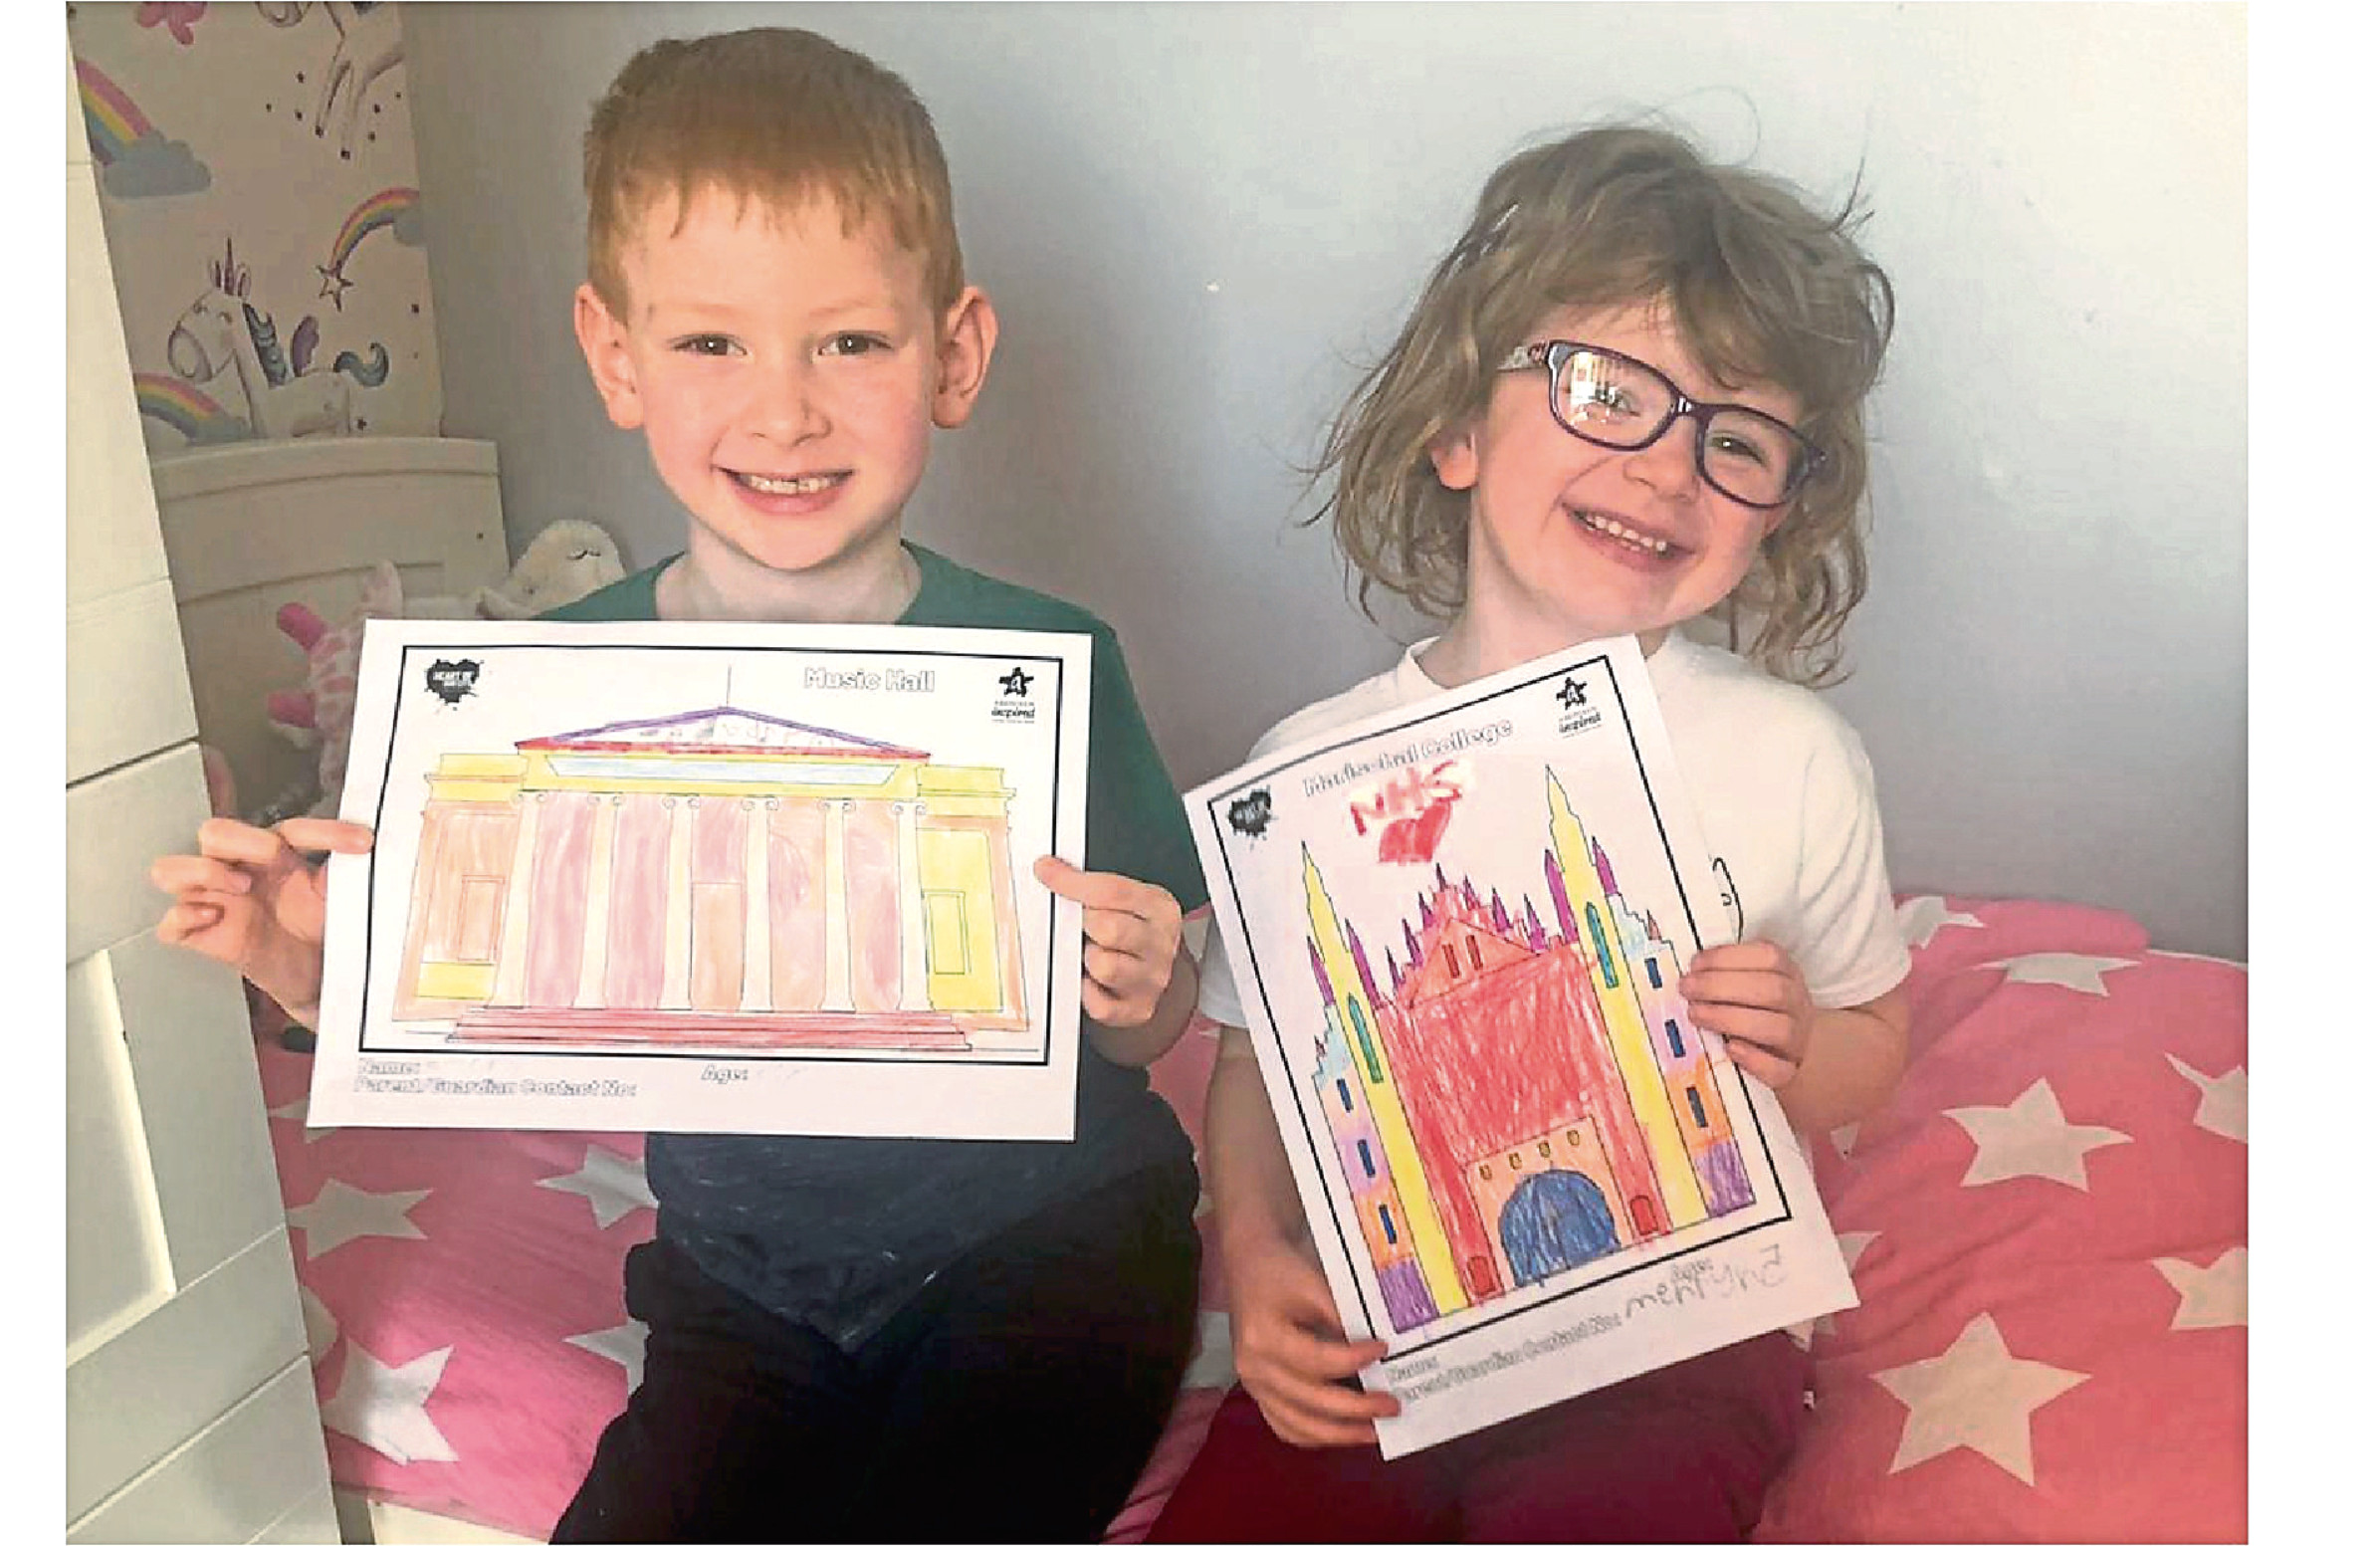 Emery, 7 and Mehryn, 5 brighten up readers' days with their pictures